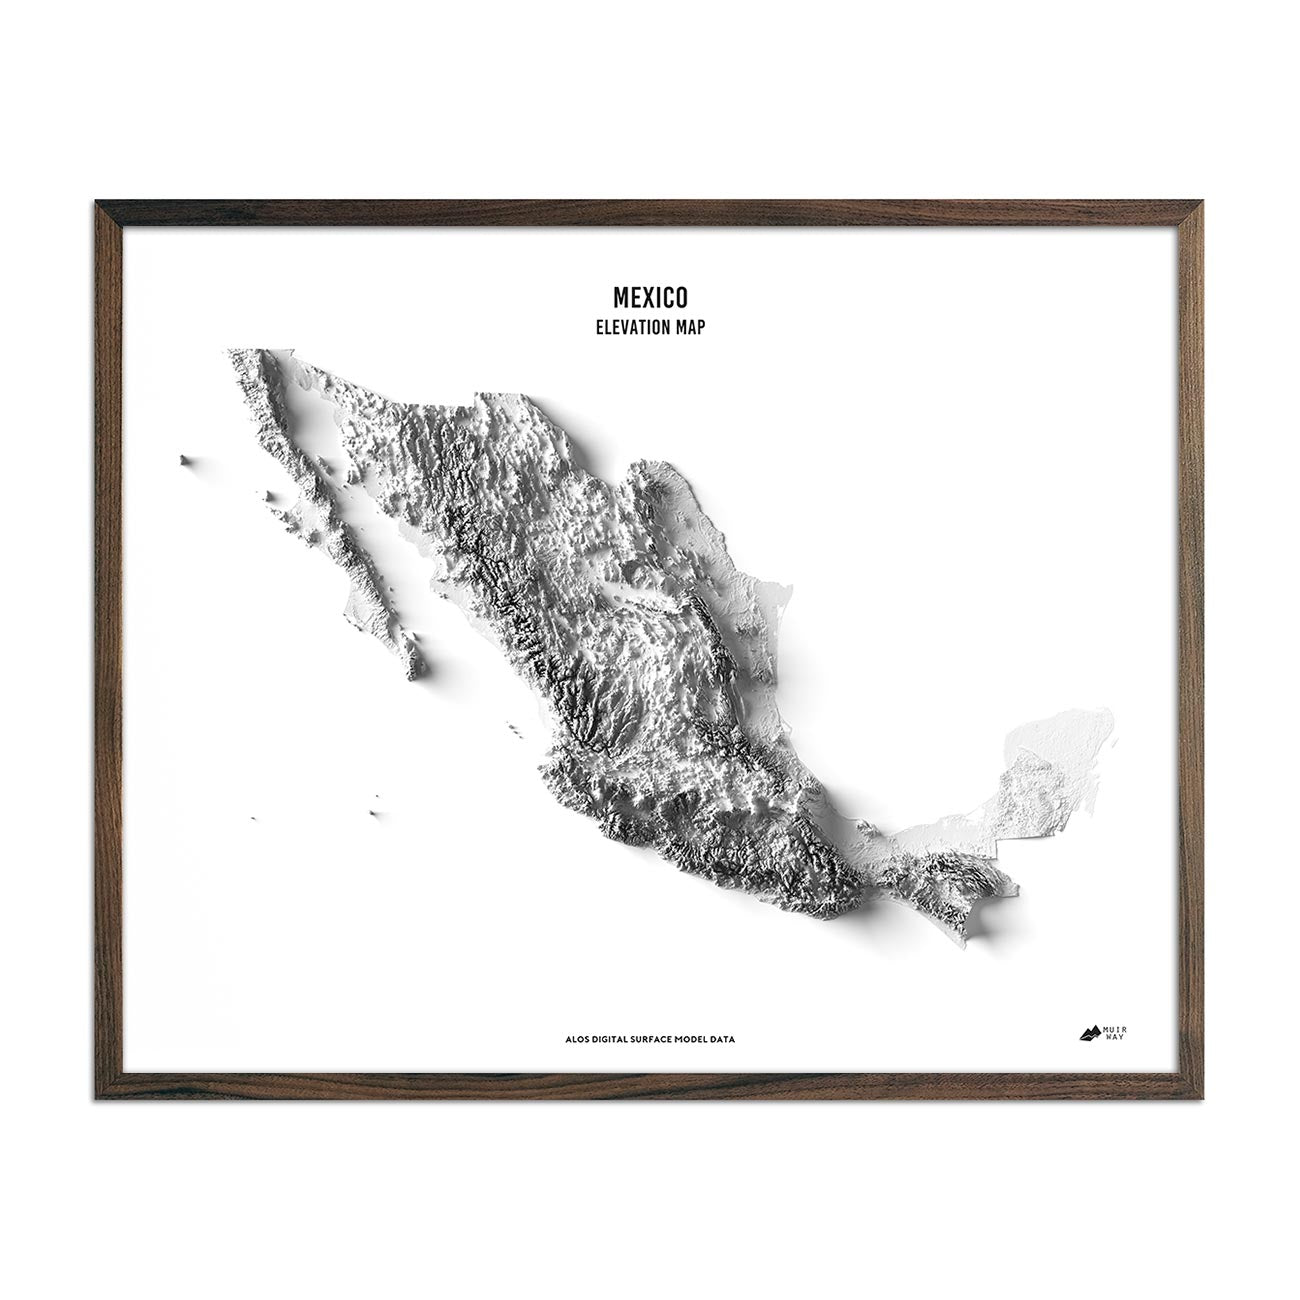 Mexico Elevation Map